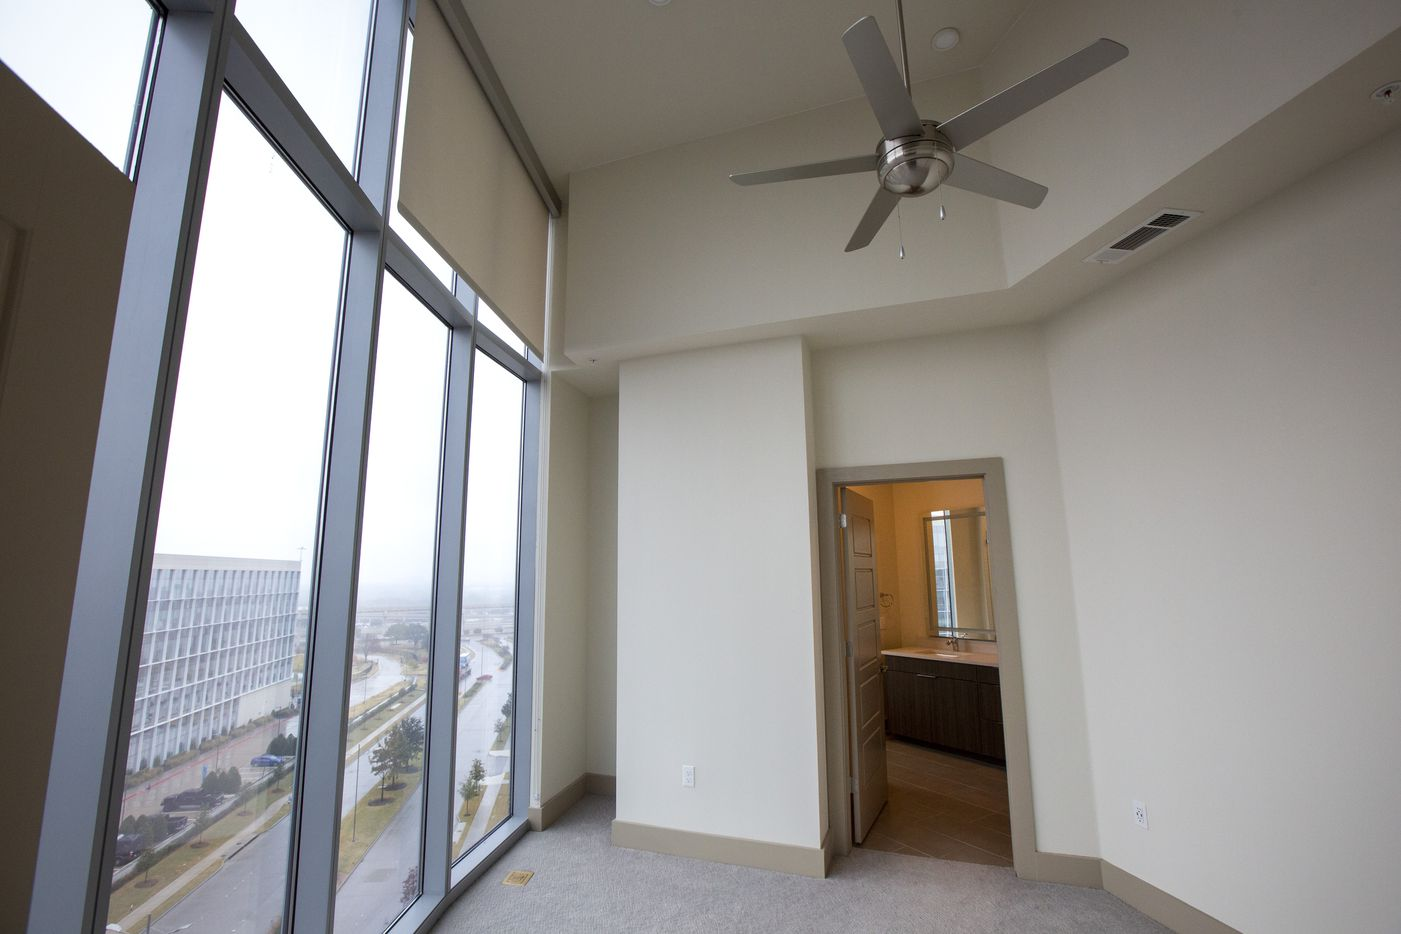 The view from a bedroom in a two-bedroom unit at the new LVL 29 apartment high-rise in Plano. (Lynda M. Gonzalez/The Dallas Morning News)